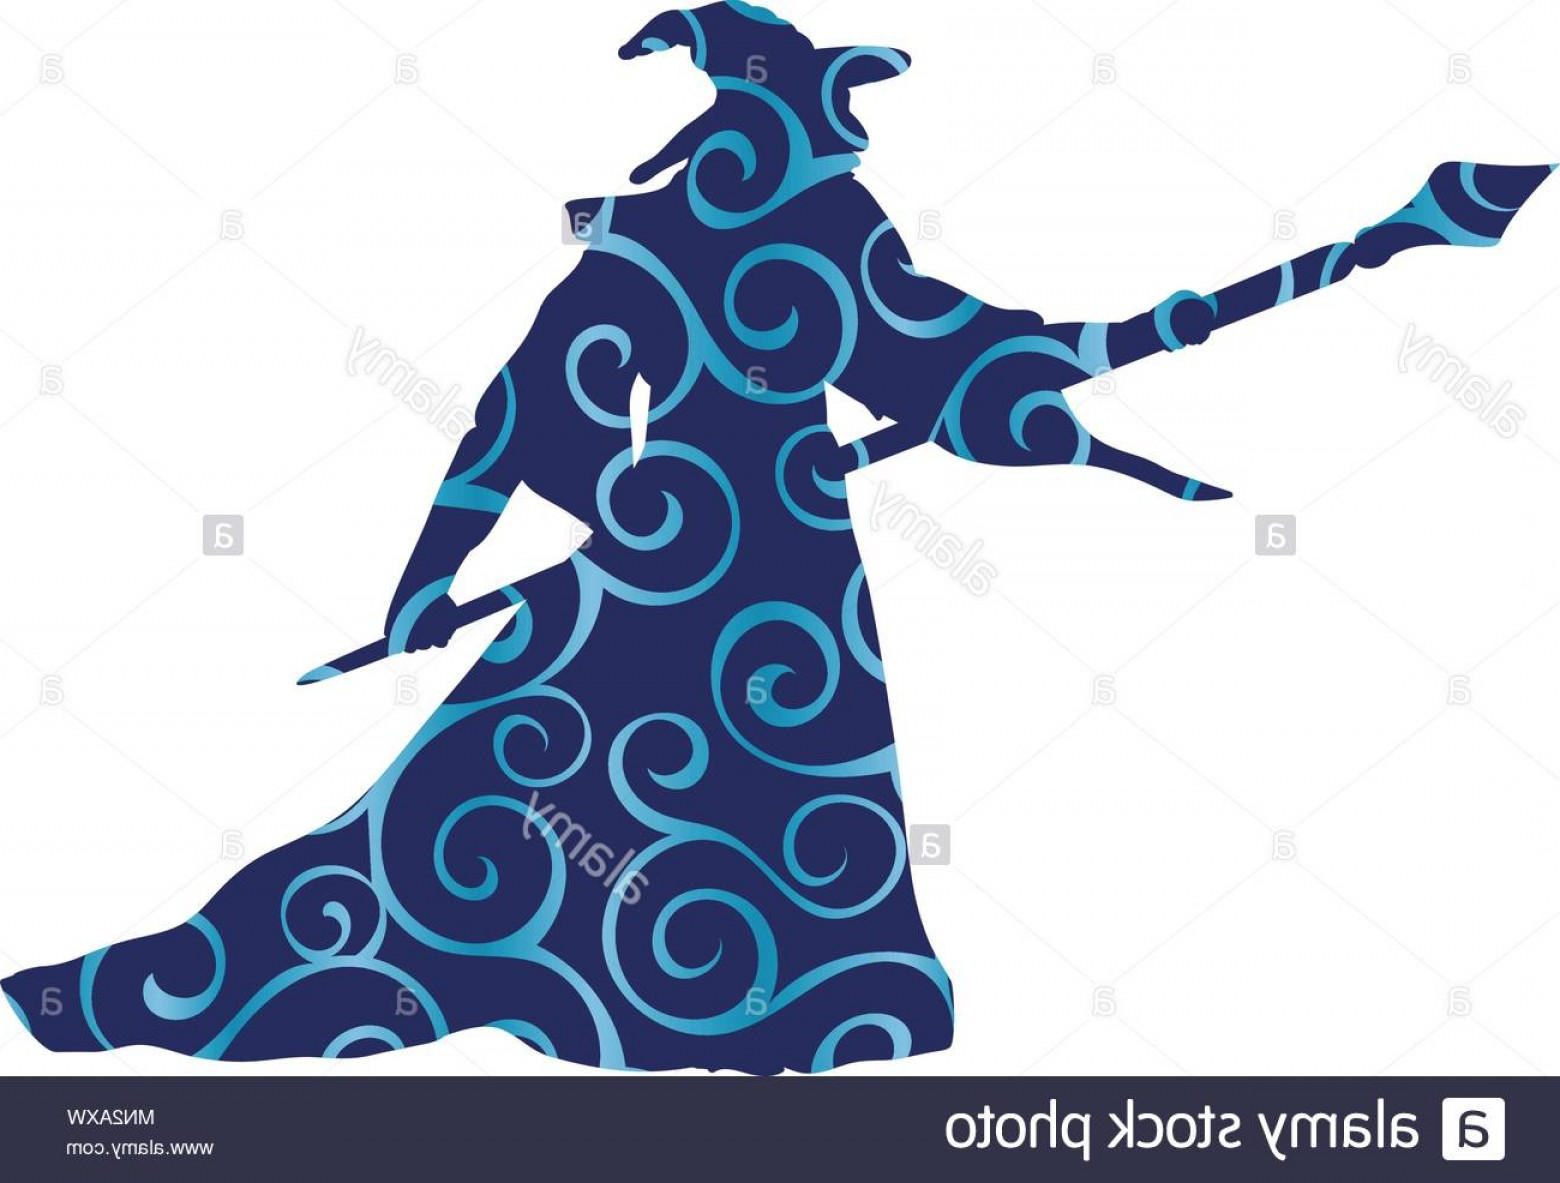 Wizard Silhouette Vector: Magician Wizard Character Pattern Silhouette Fantasy Image